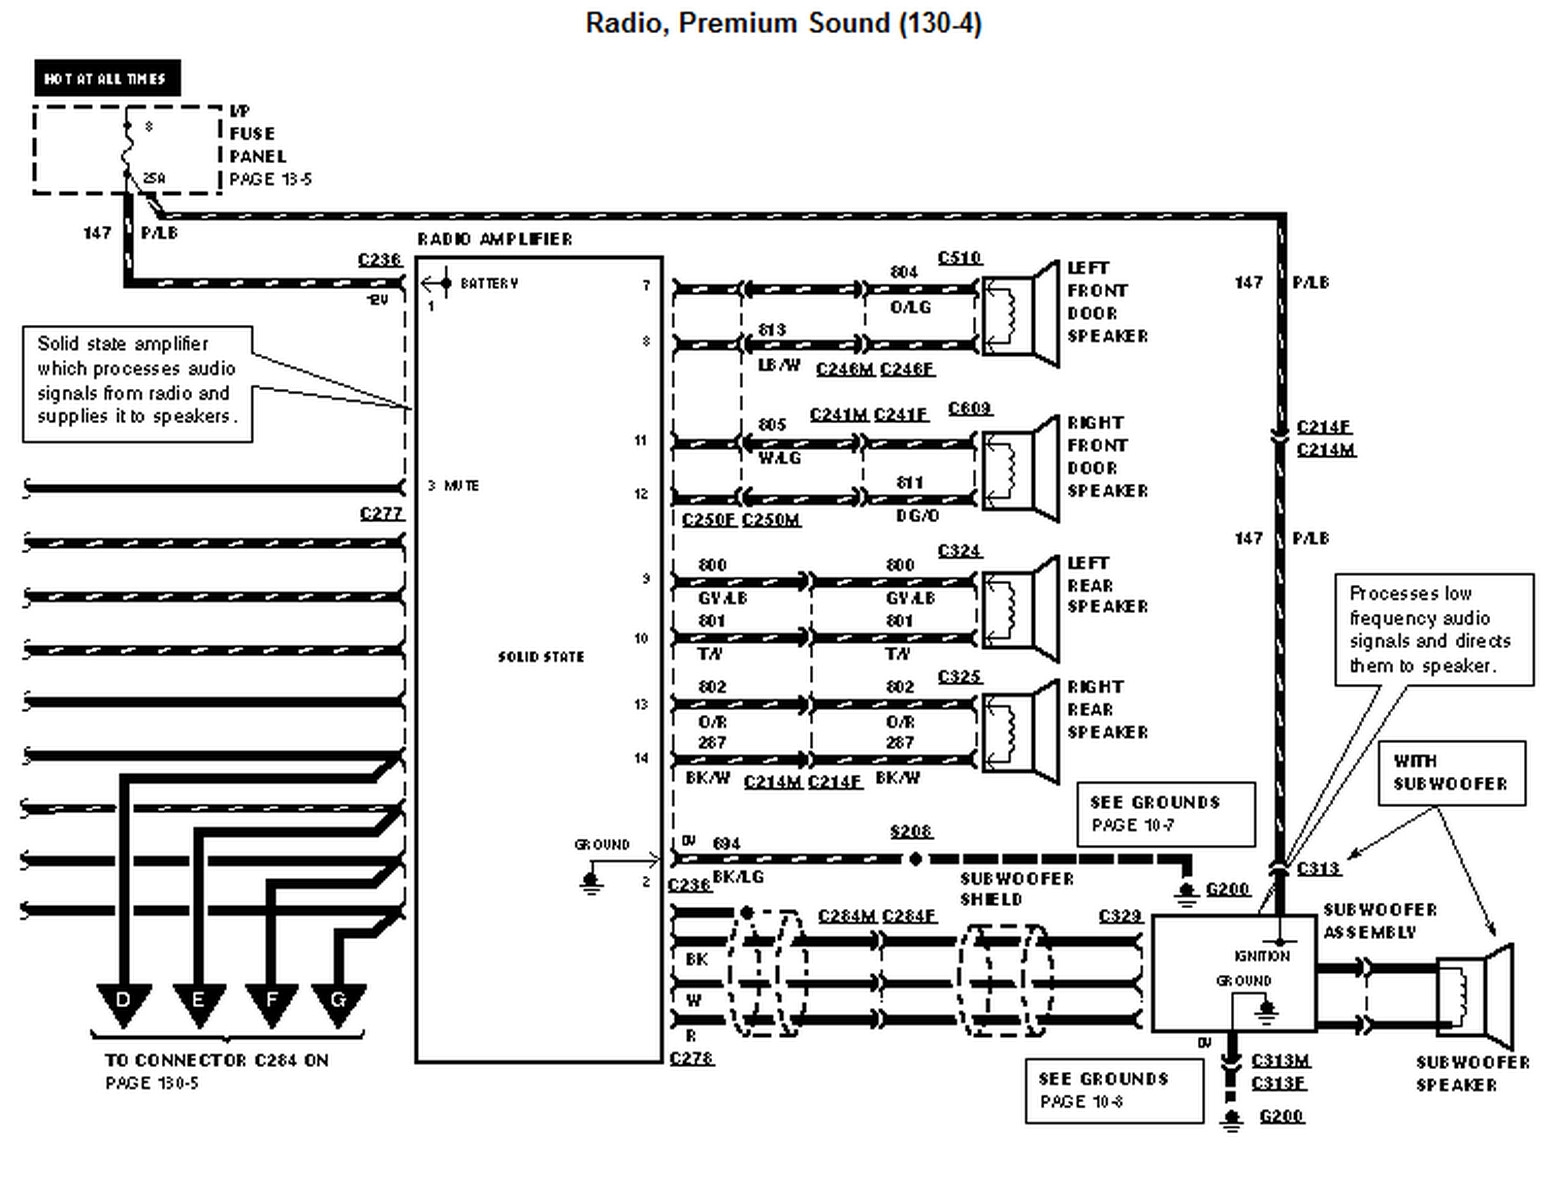 1996 F150 Radio Wiring Diagram Free 2005 Ford Stereo Picture